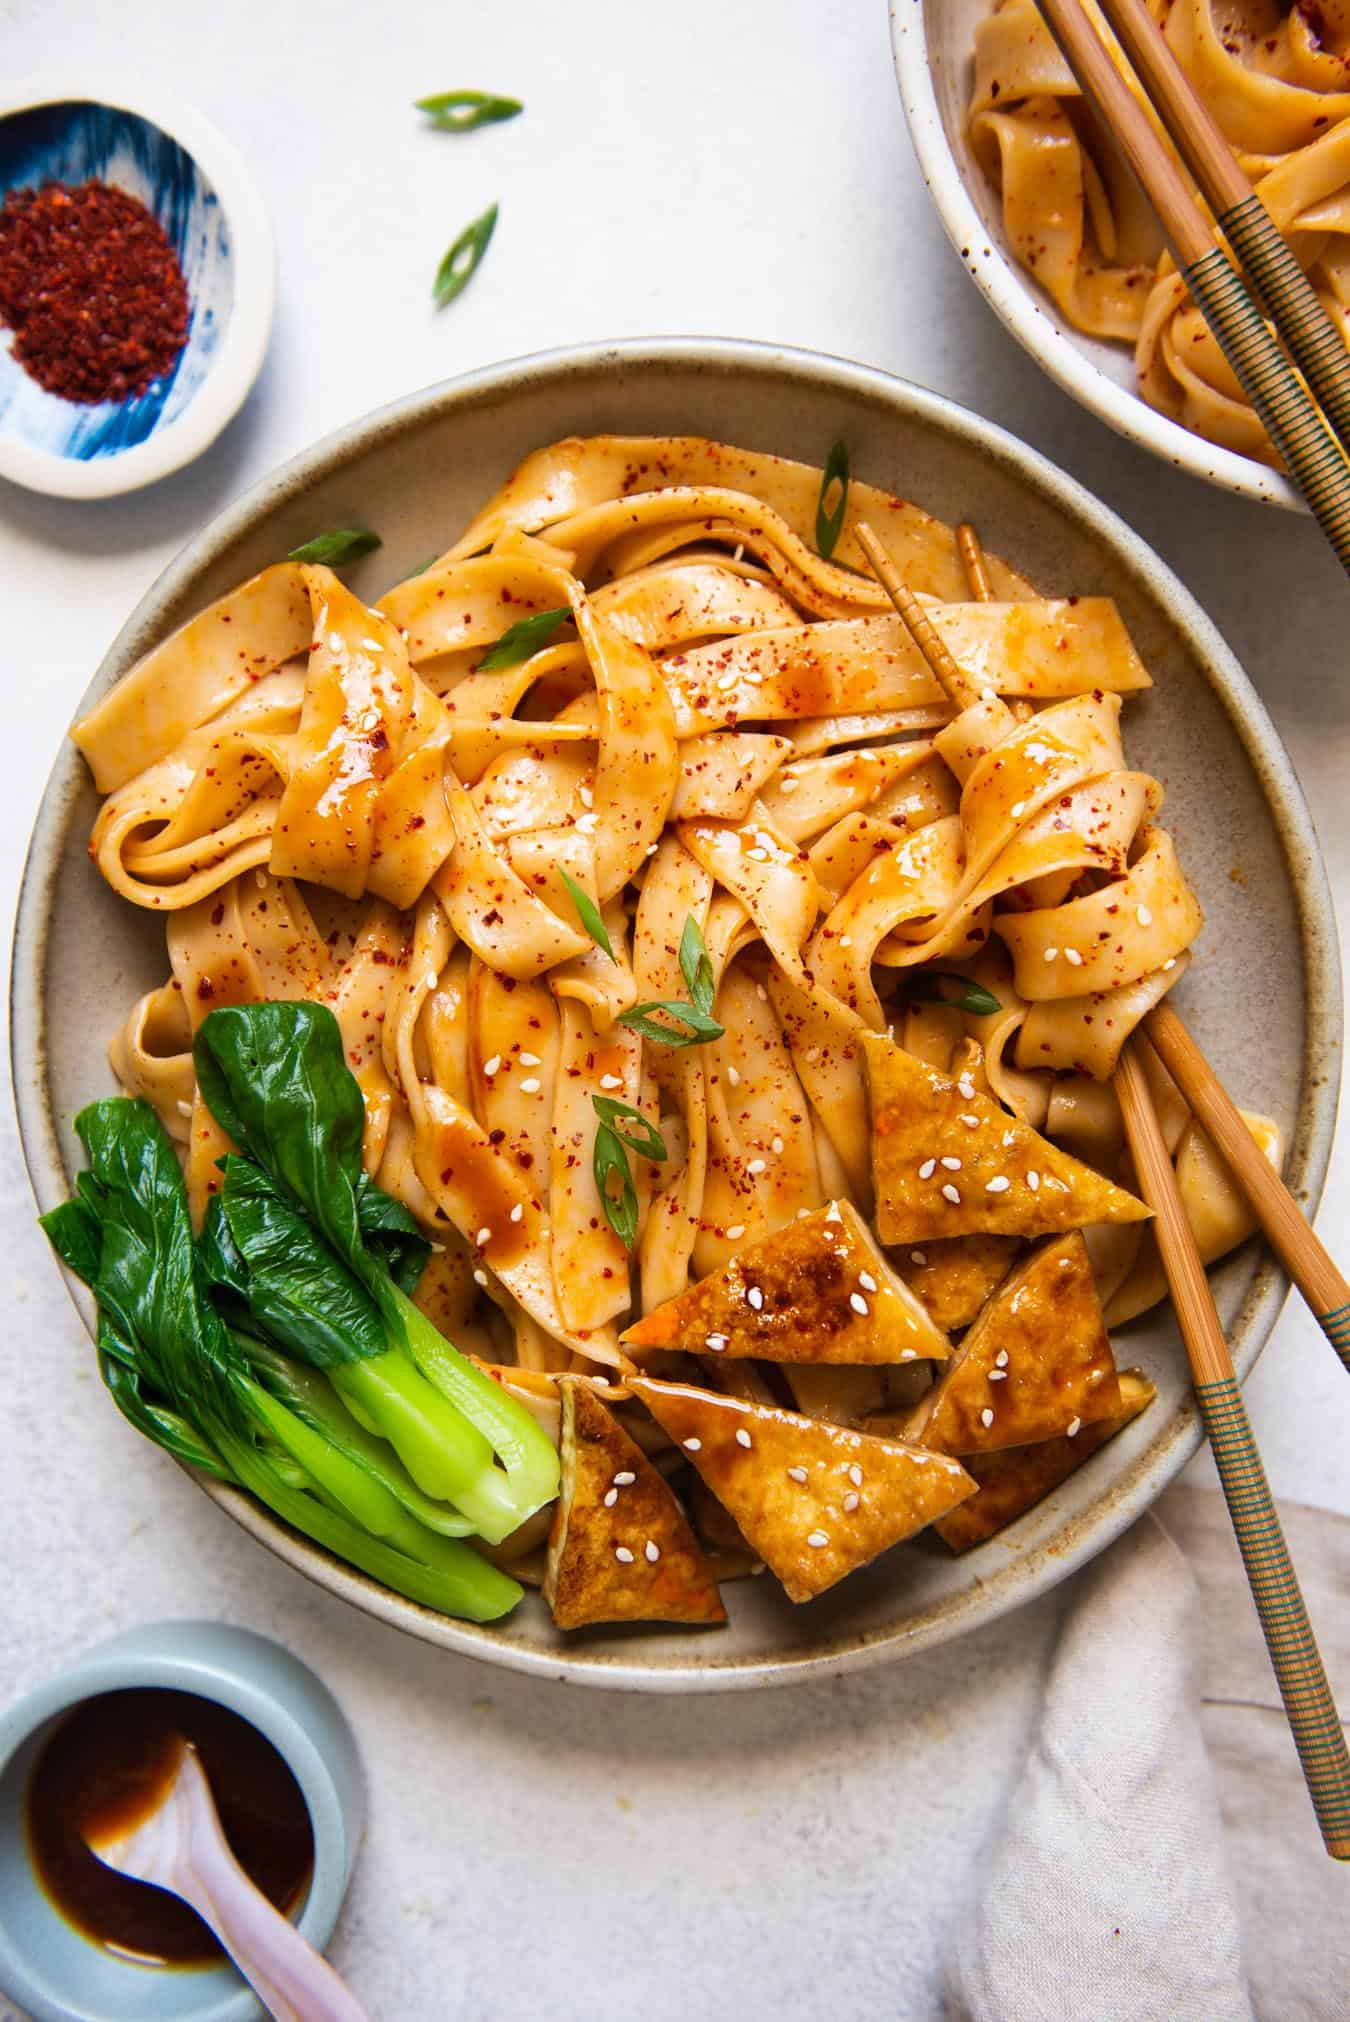 Easy Homemade Noodles with Spicy Peanut Sauce